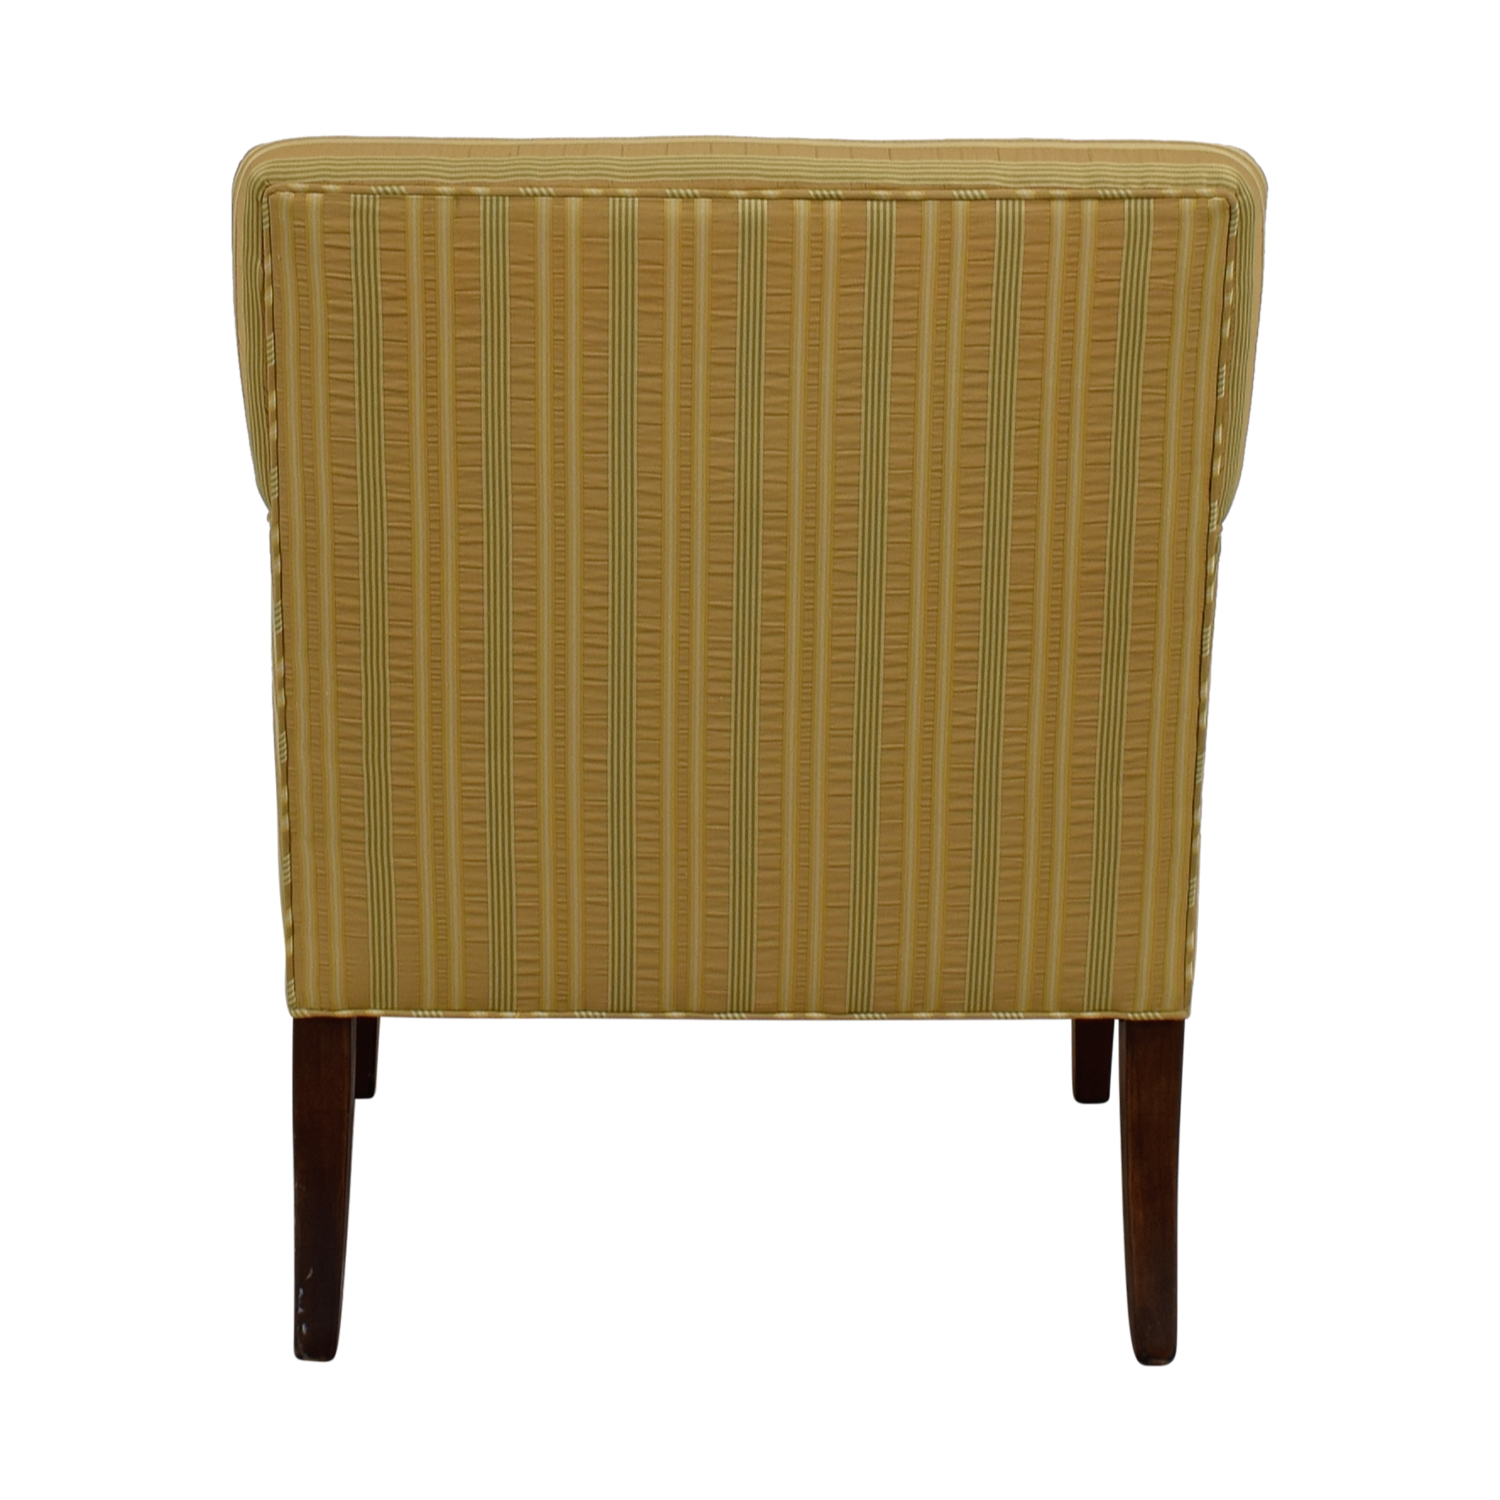 The Charles Stewart Company The Charles Stewart Company Gold Beige and Yellow Stripe Accent Chair on sale